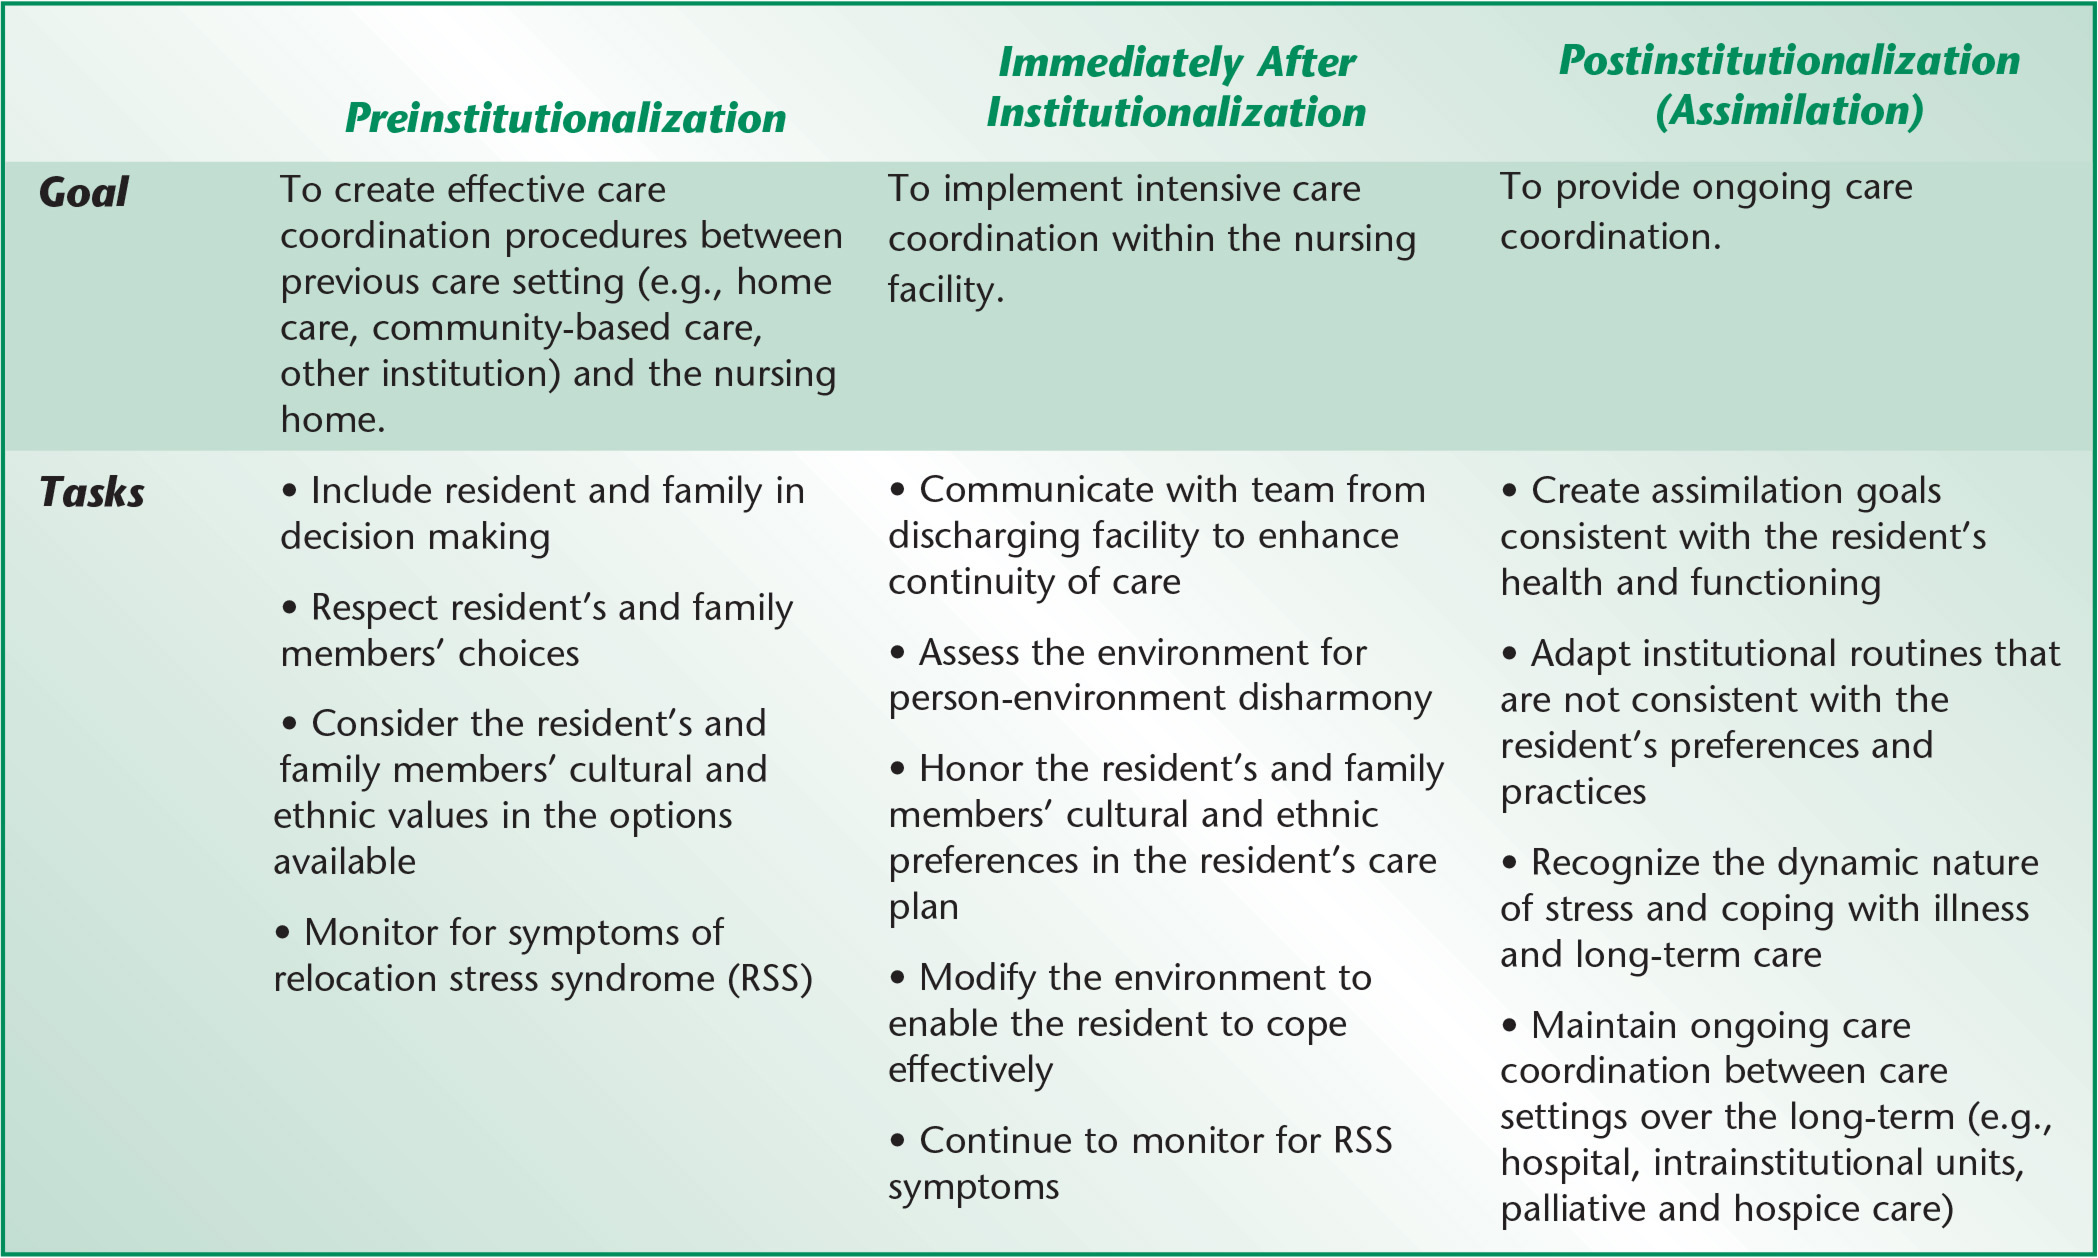 The role of the interdisciplinary team in providing seamless transitions to nursing home care.